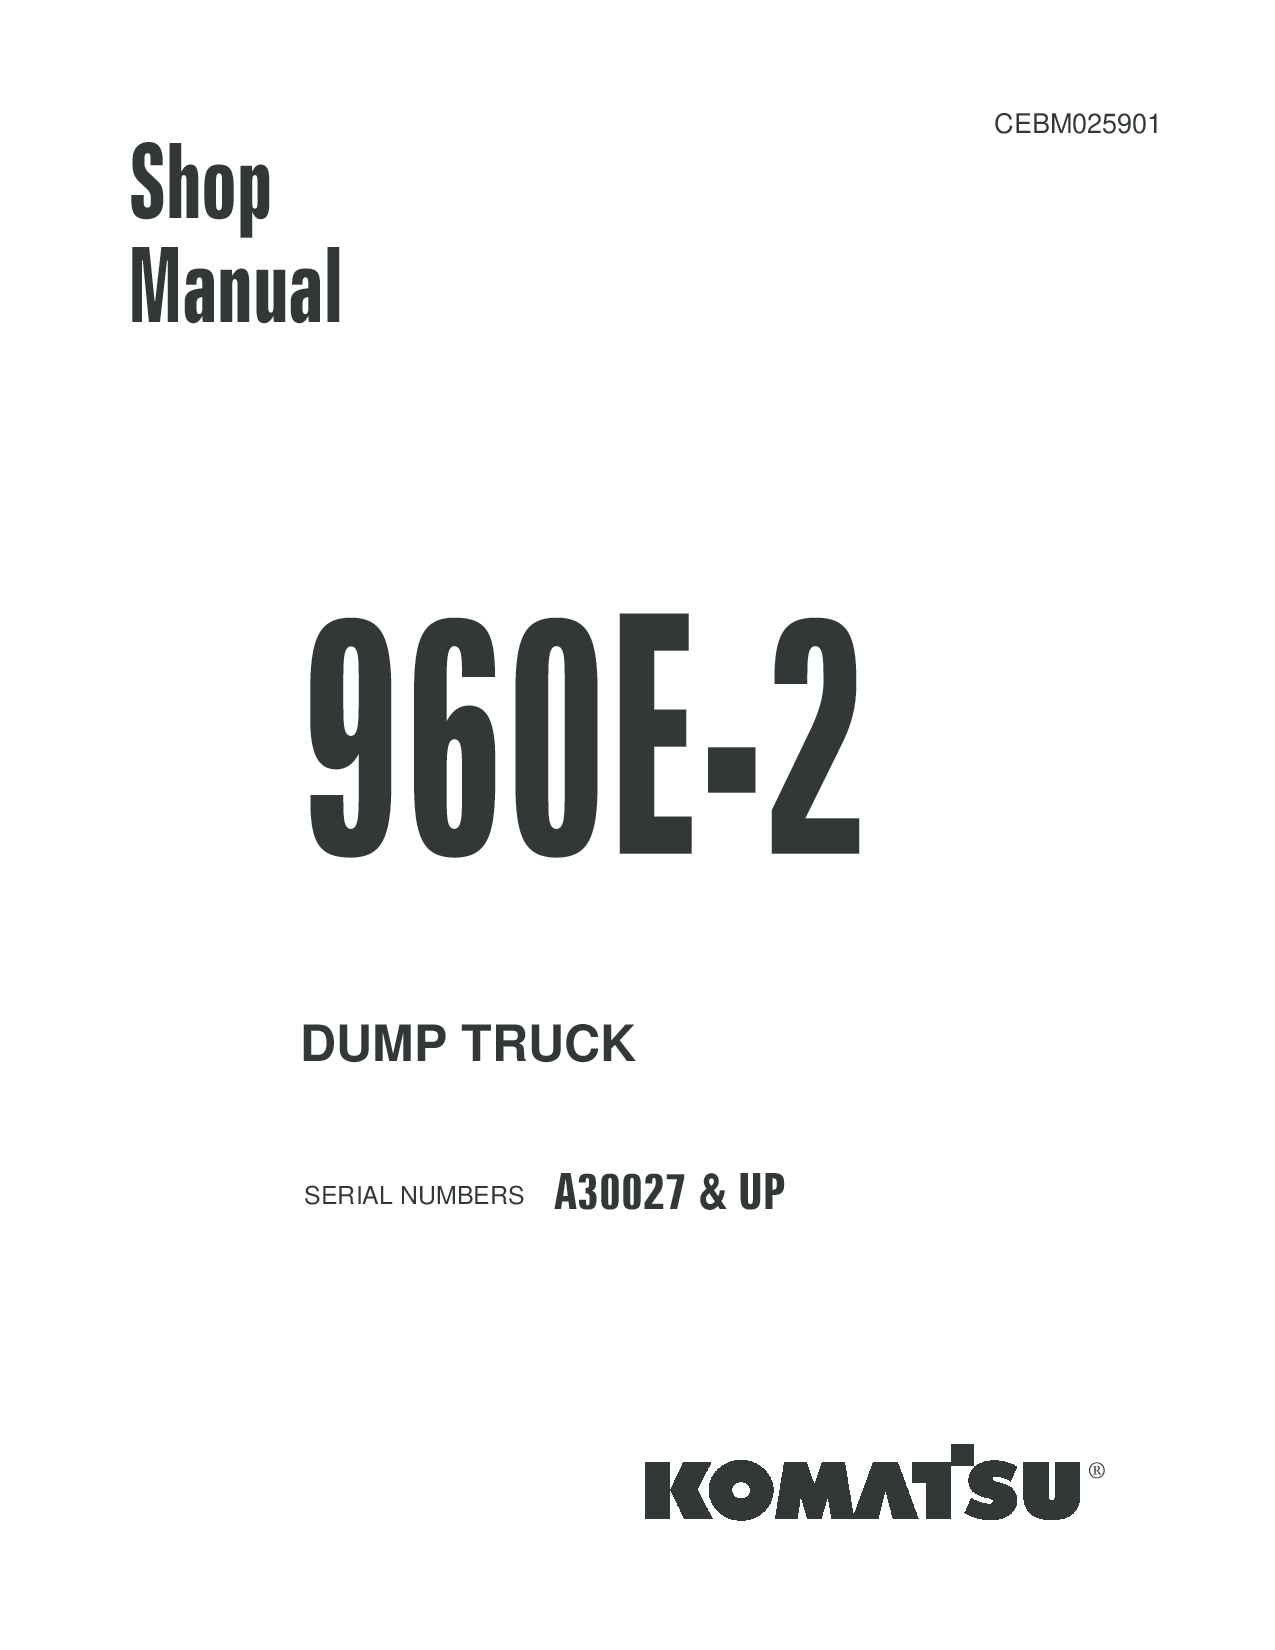 Komatsu 960E-2 Operation and Maintenance Manual